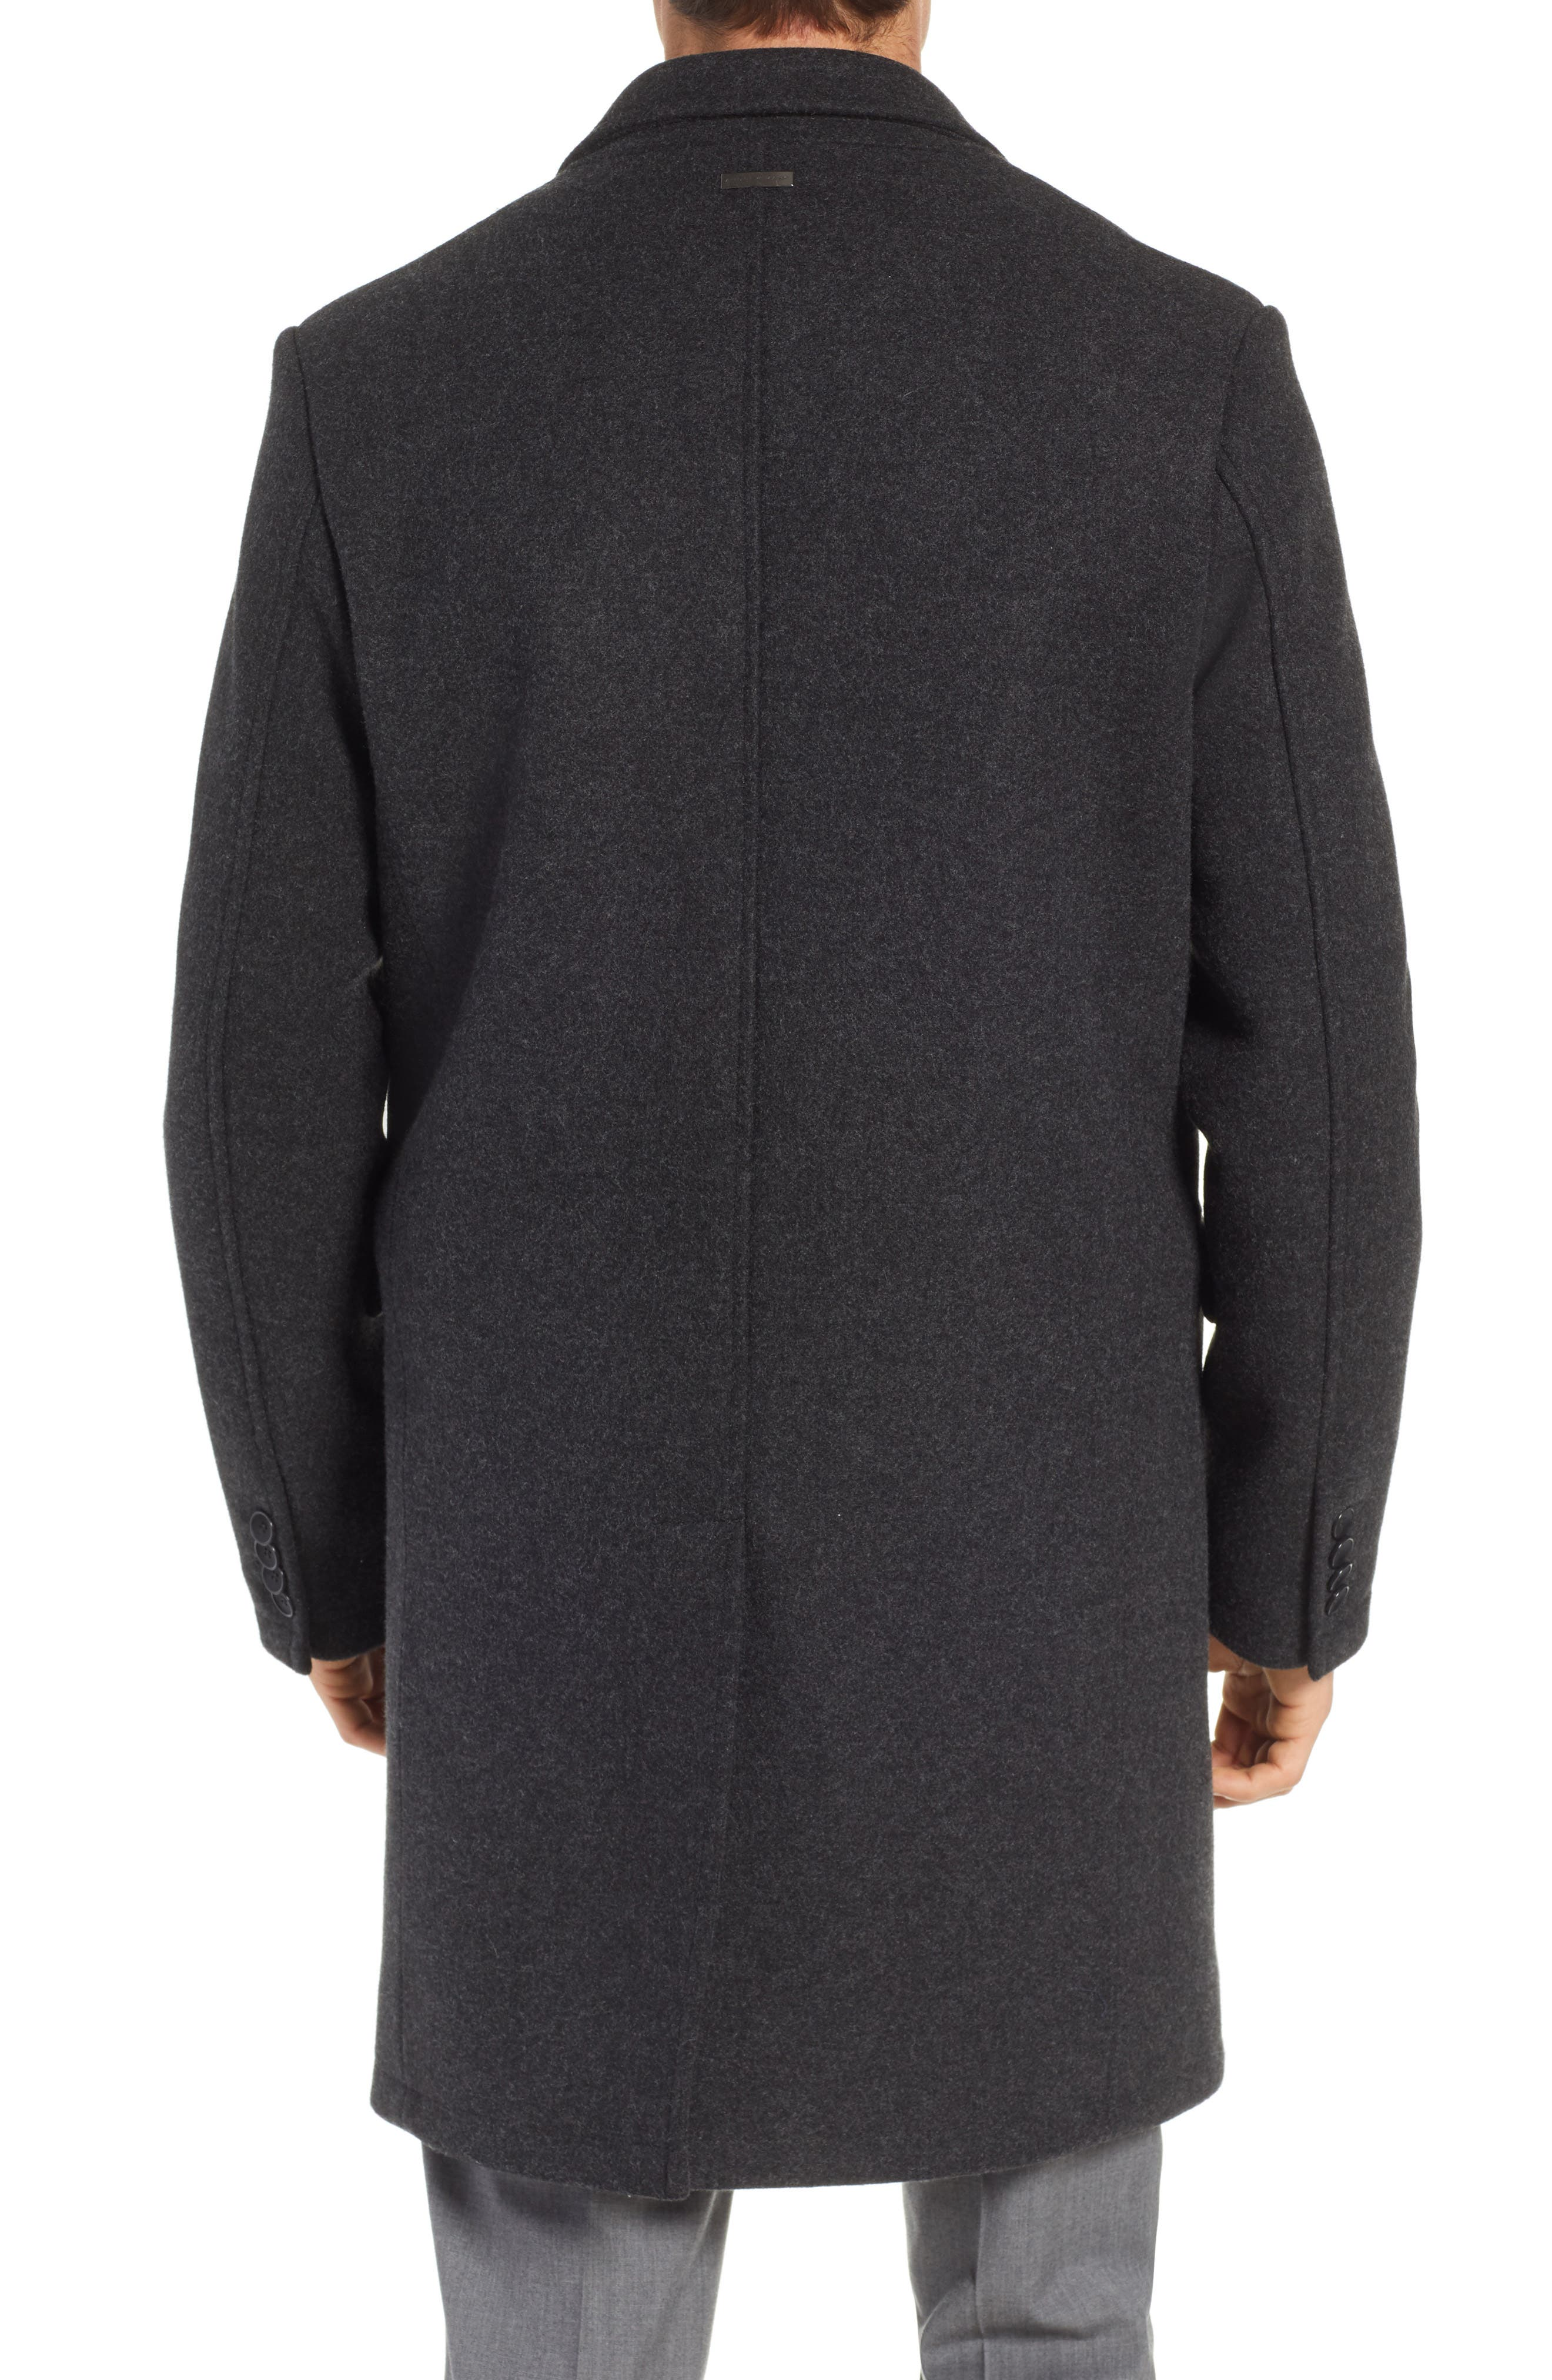 Westcott Wool Car Coat,                             Alternate thumbnail 2, color,                             001